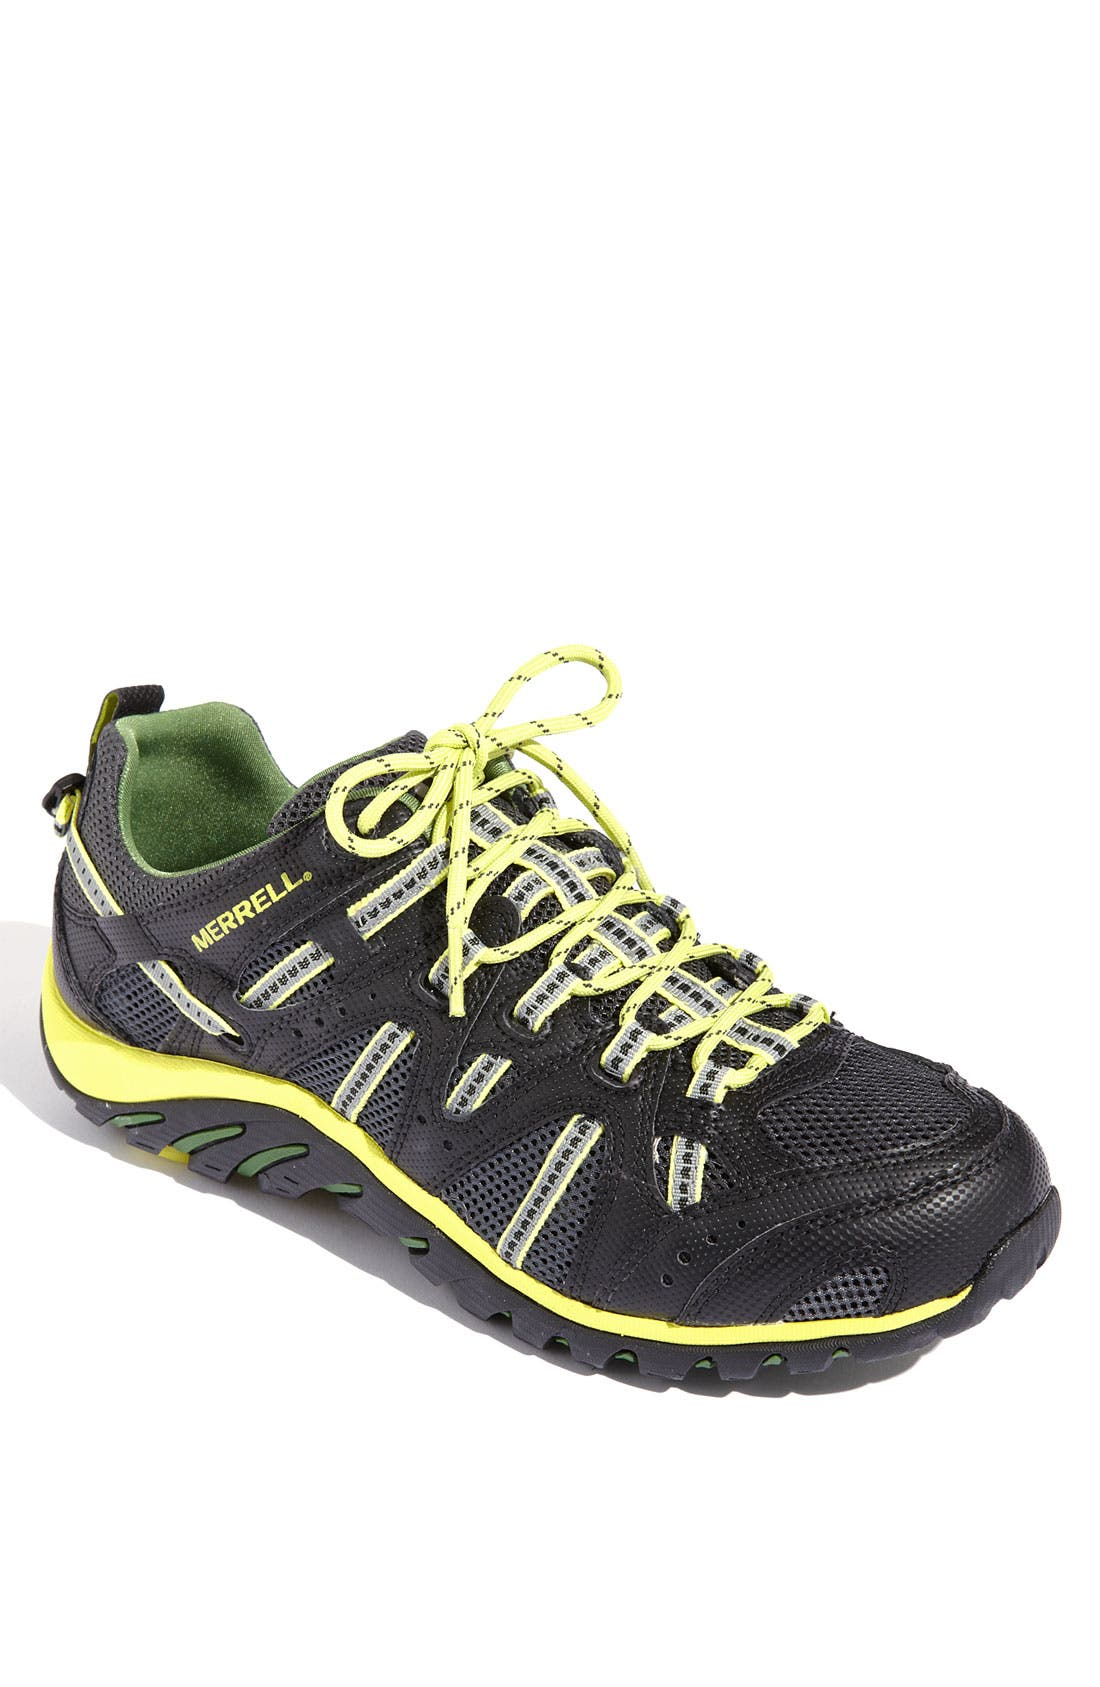 Alternate Image 1 Selected - Merrell 'Waterpro Manistee' Trail Shoe (Men)